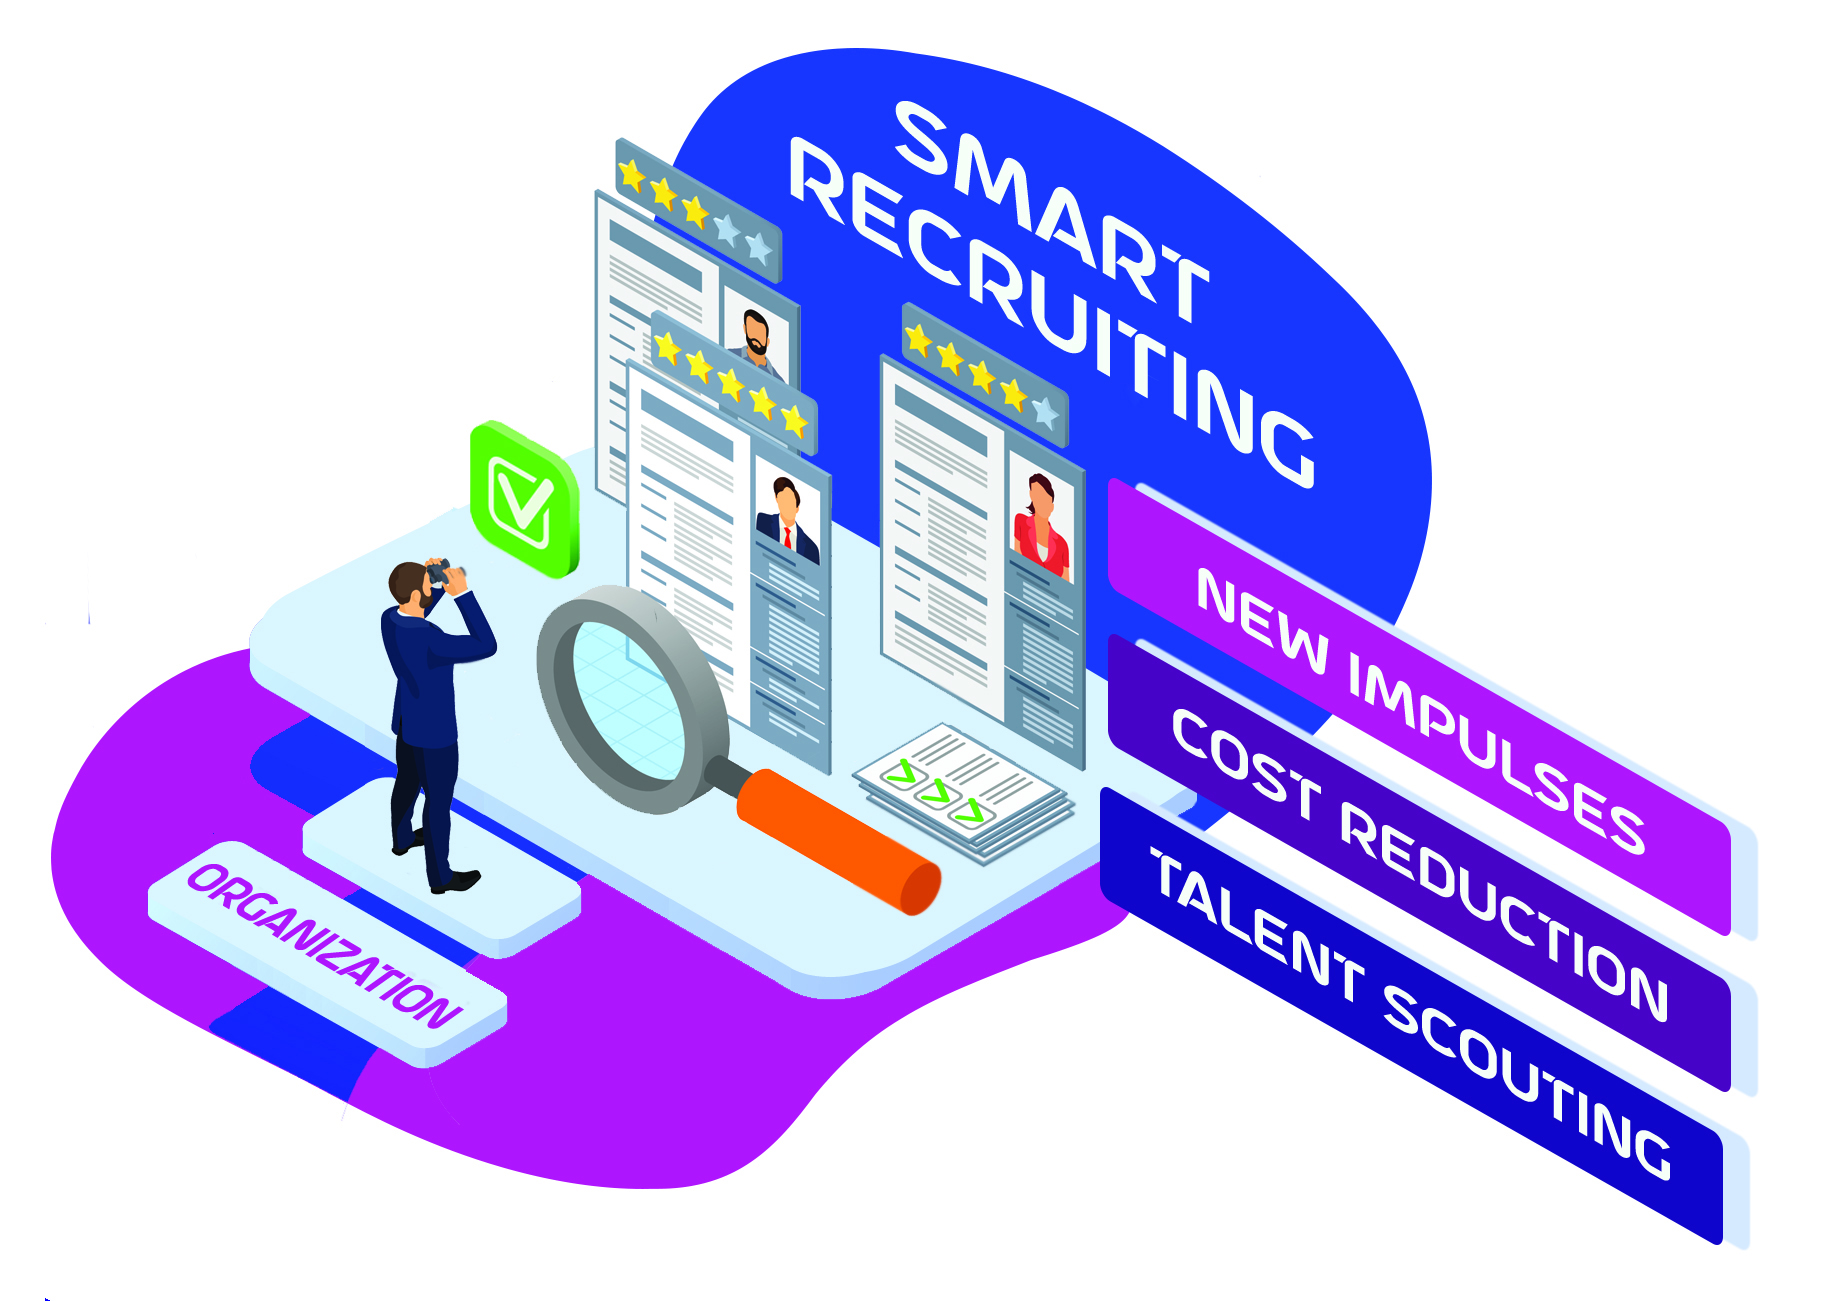 Smart Recruiting New Impulses Cost Reduction Talent Scouting